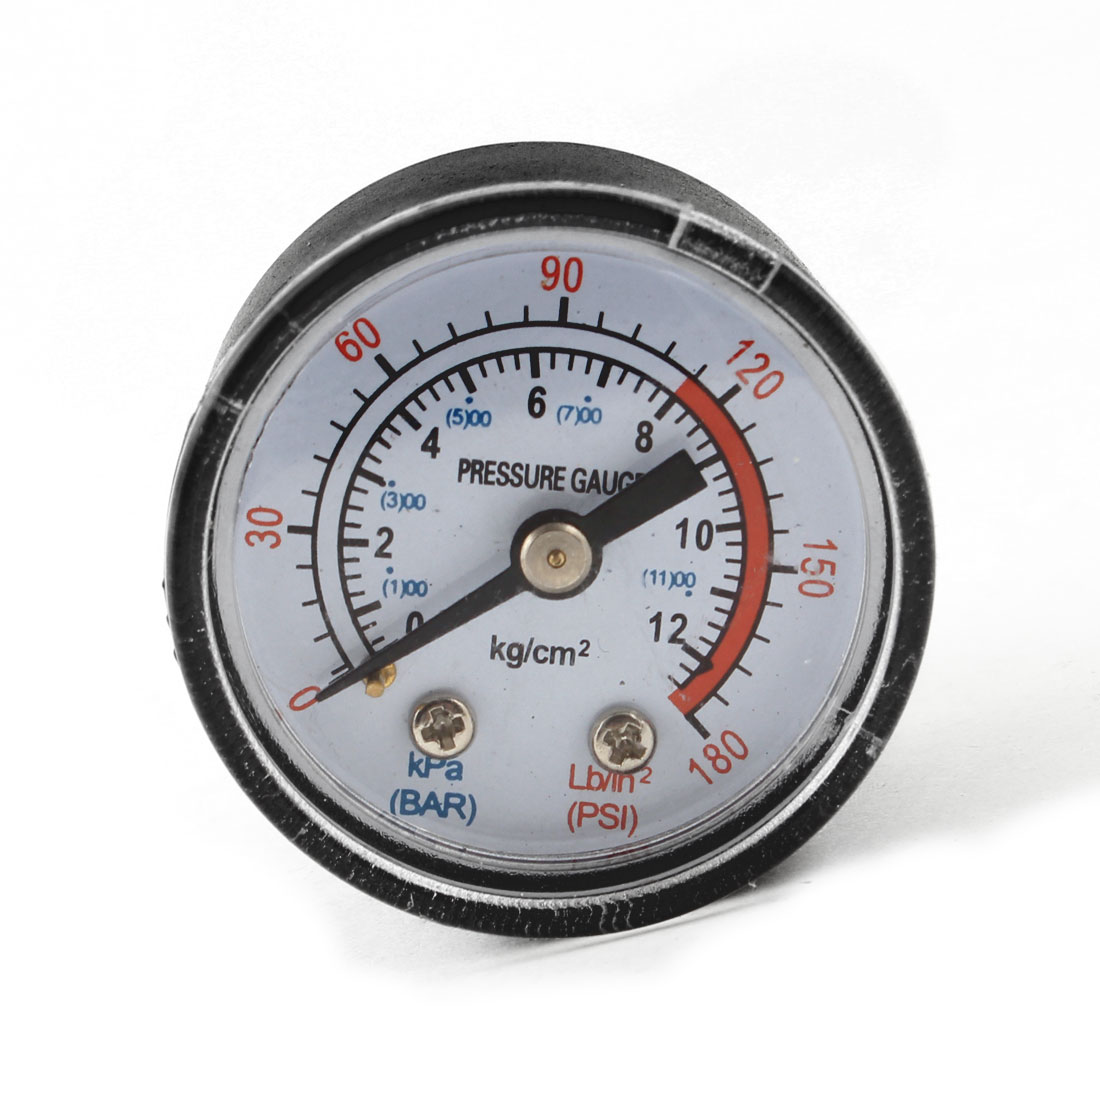 "0-12 kg/cm2 0-180Lb/in2 (1)00-(11)00kPa 1/8"" PT Male Threaded Air Pressure Gauge"